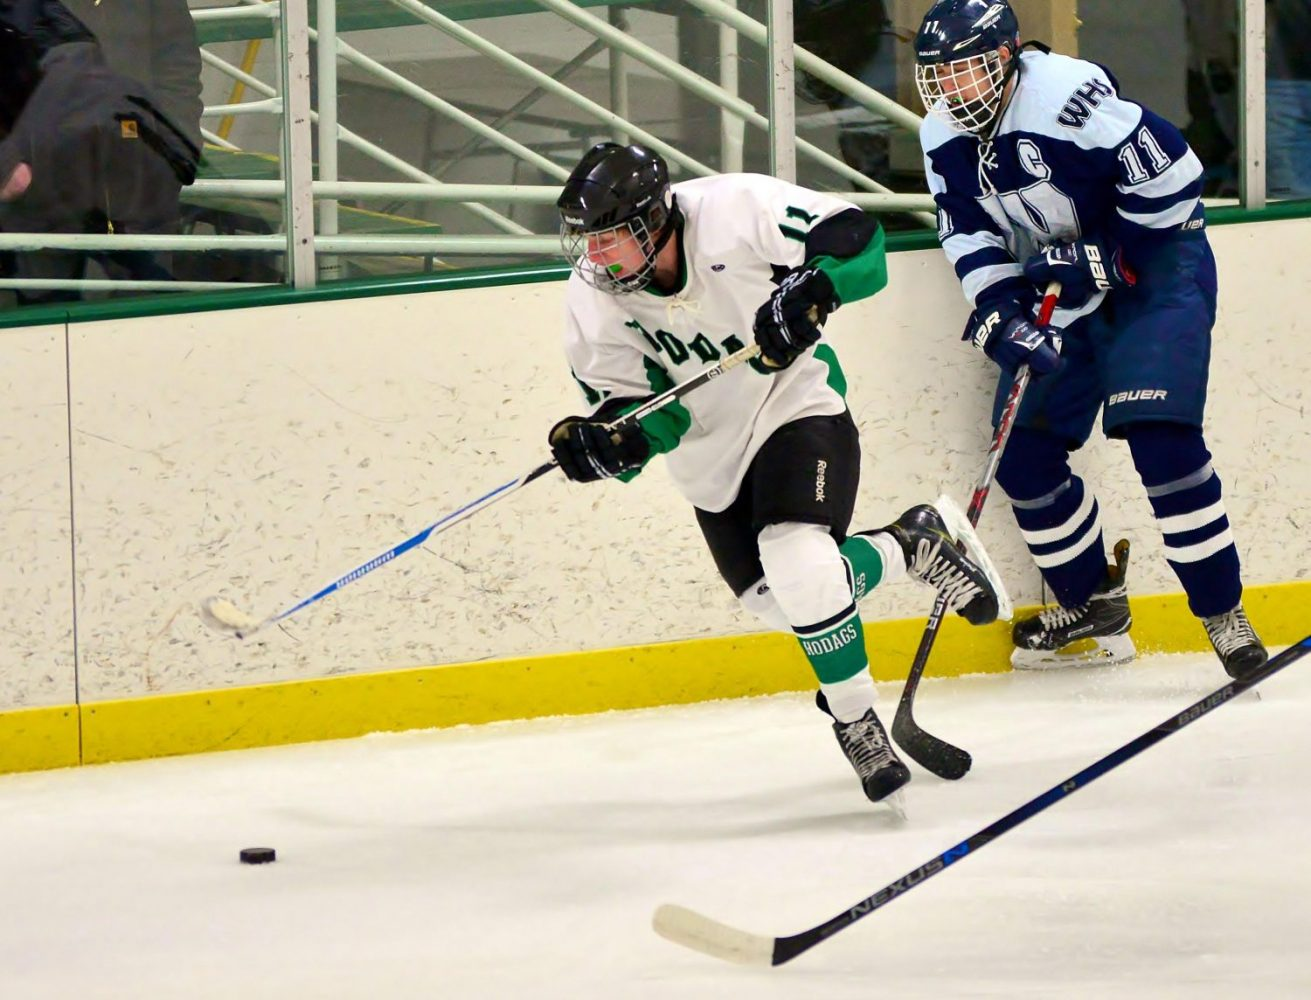 At left, the Hodags' Matthias Schneider advances the puck Jan. 28 against Waupaca.